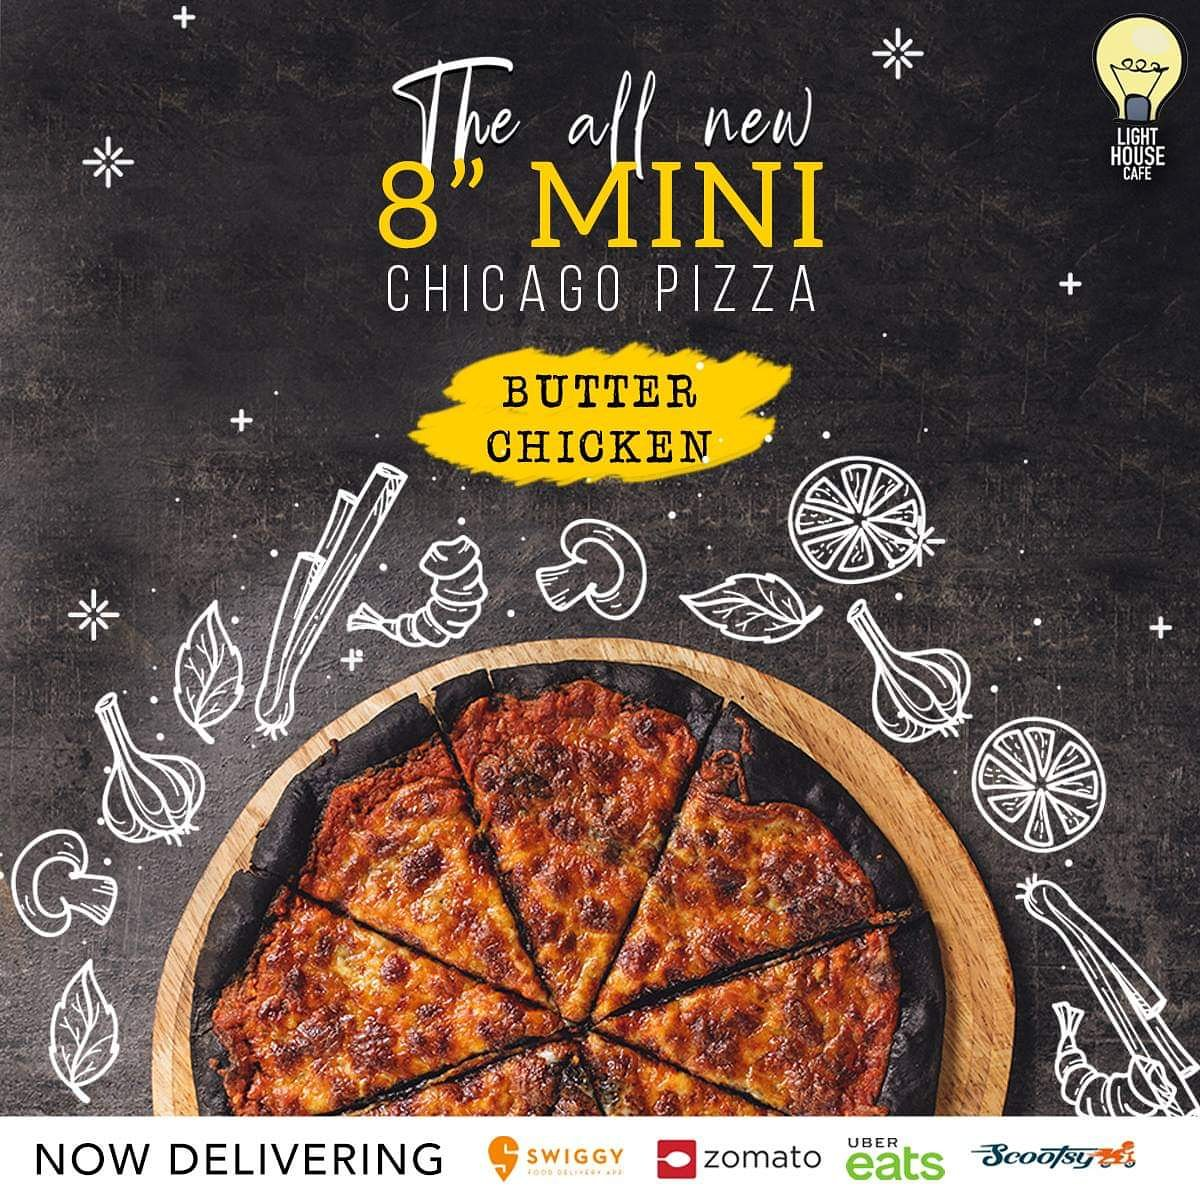 """Happiness is a slice of the all new 8"""" mini Chicago Pizza with the perfect blend of butter chicken only at Light House Cafe Mumbai  #LHC #Worli #Mumbai #Zomato #Blogpost #bloggers #Weekday #CurlyTales #Weekends #Thingstodo #Mumbaifoodie #Foodgasm #mumbaifood #indianblogger"""